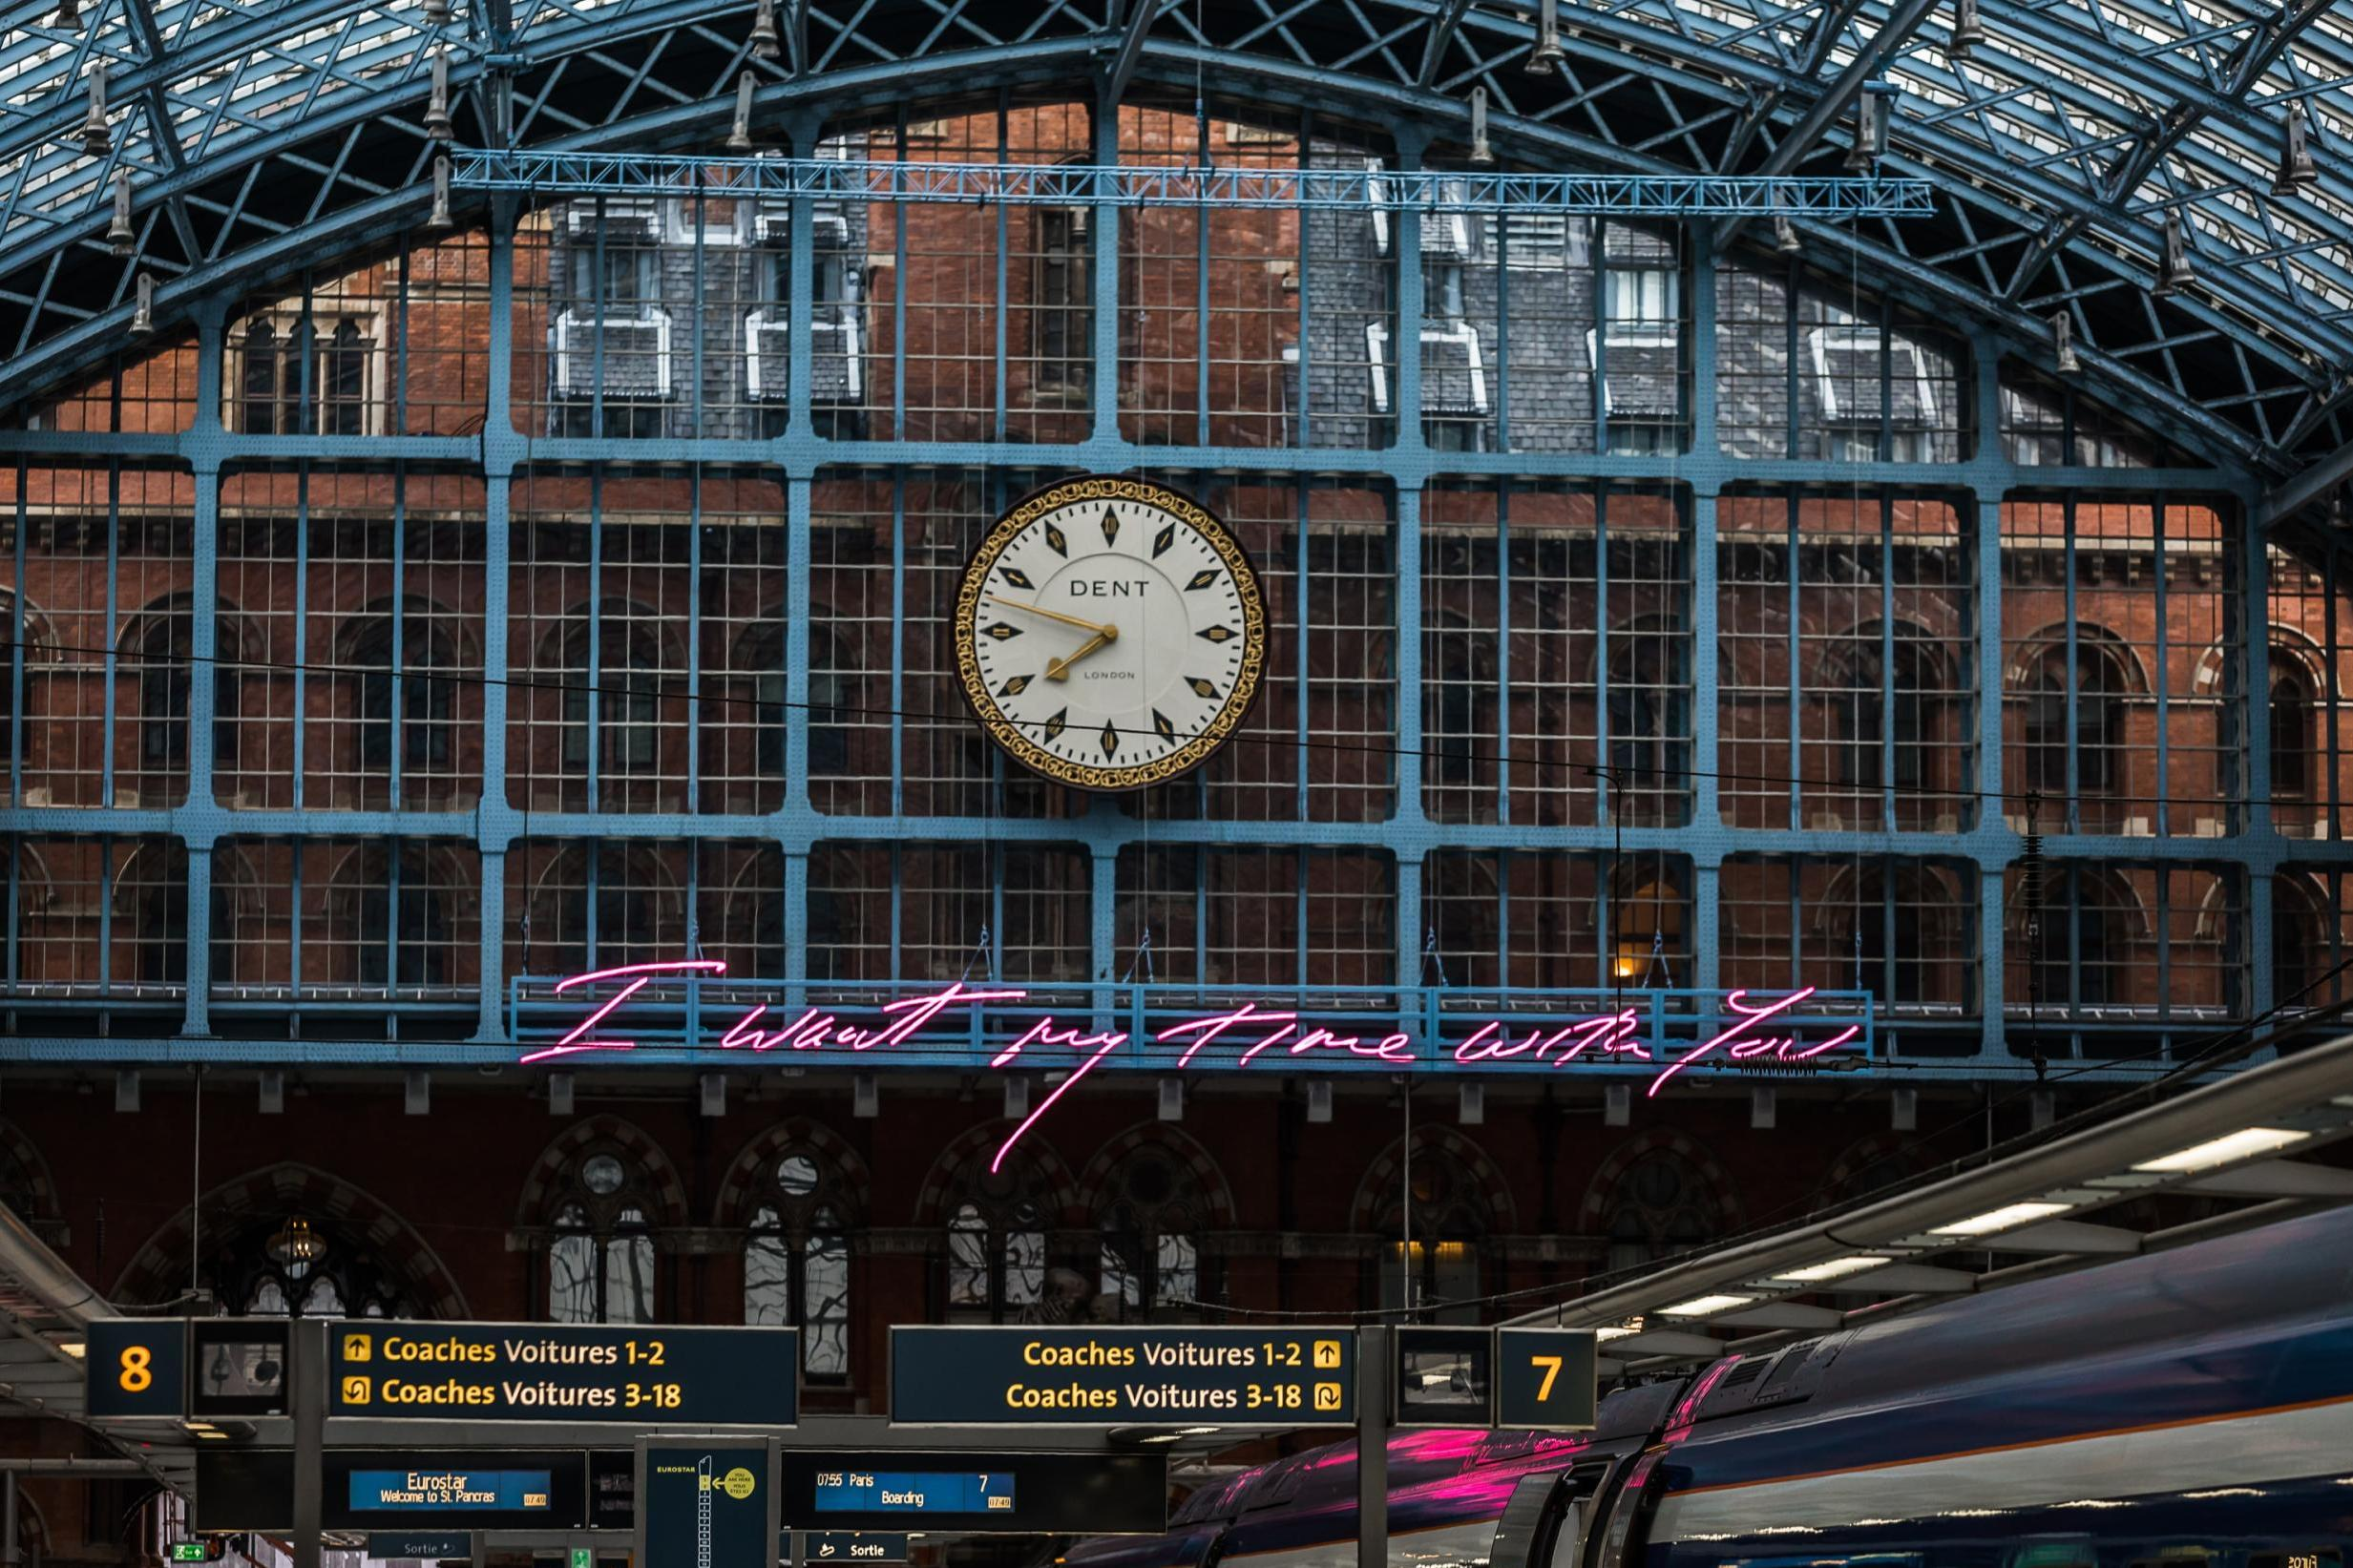 tracey emin I want my time with you neon sign saint pancras international london